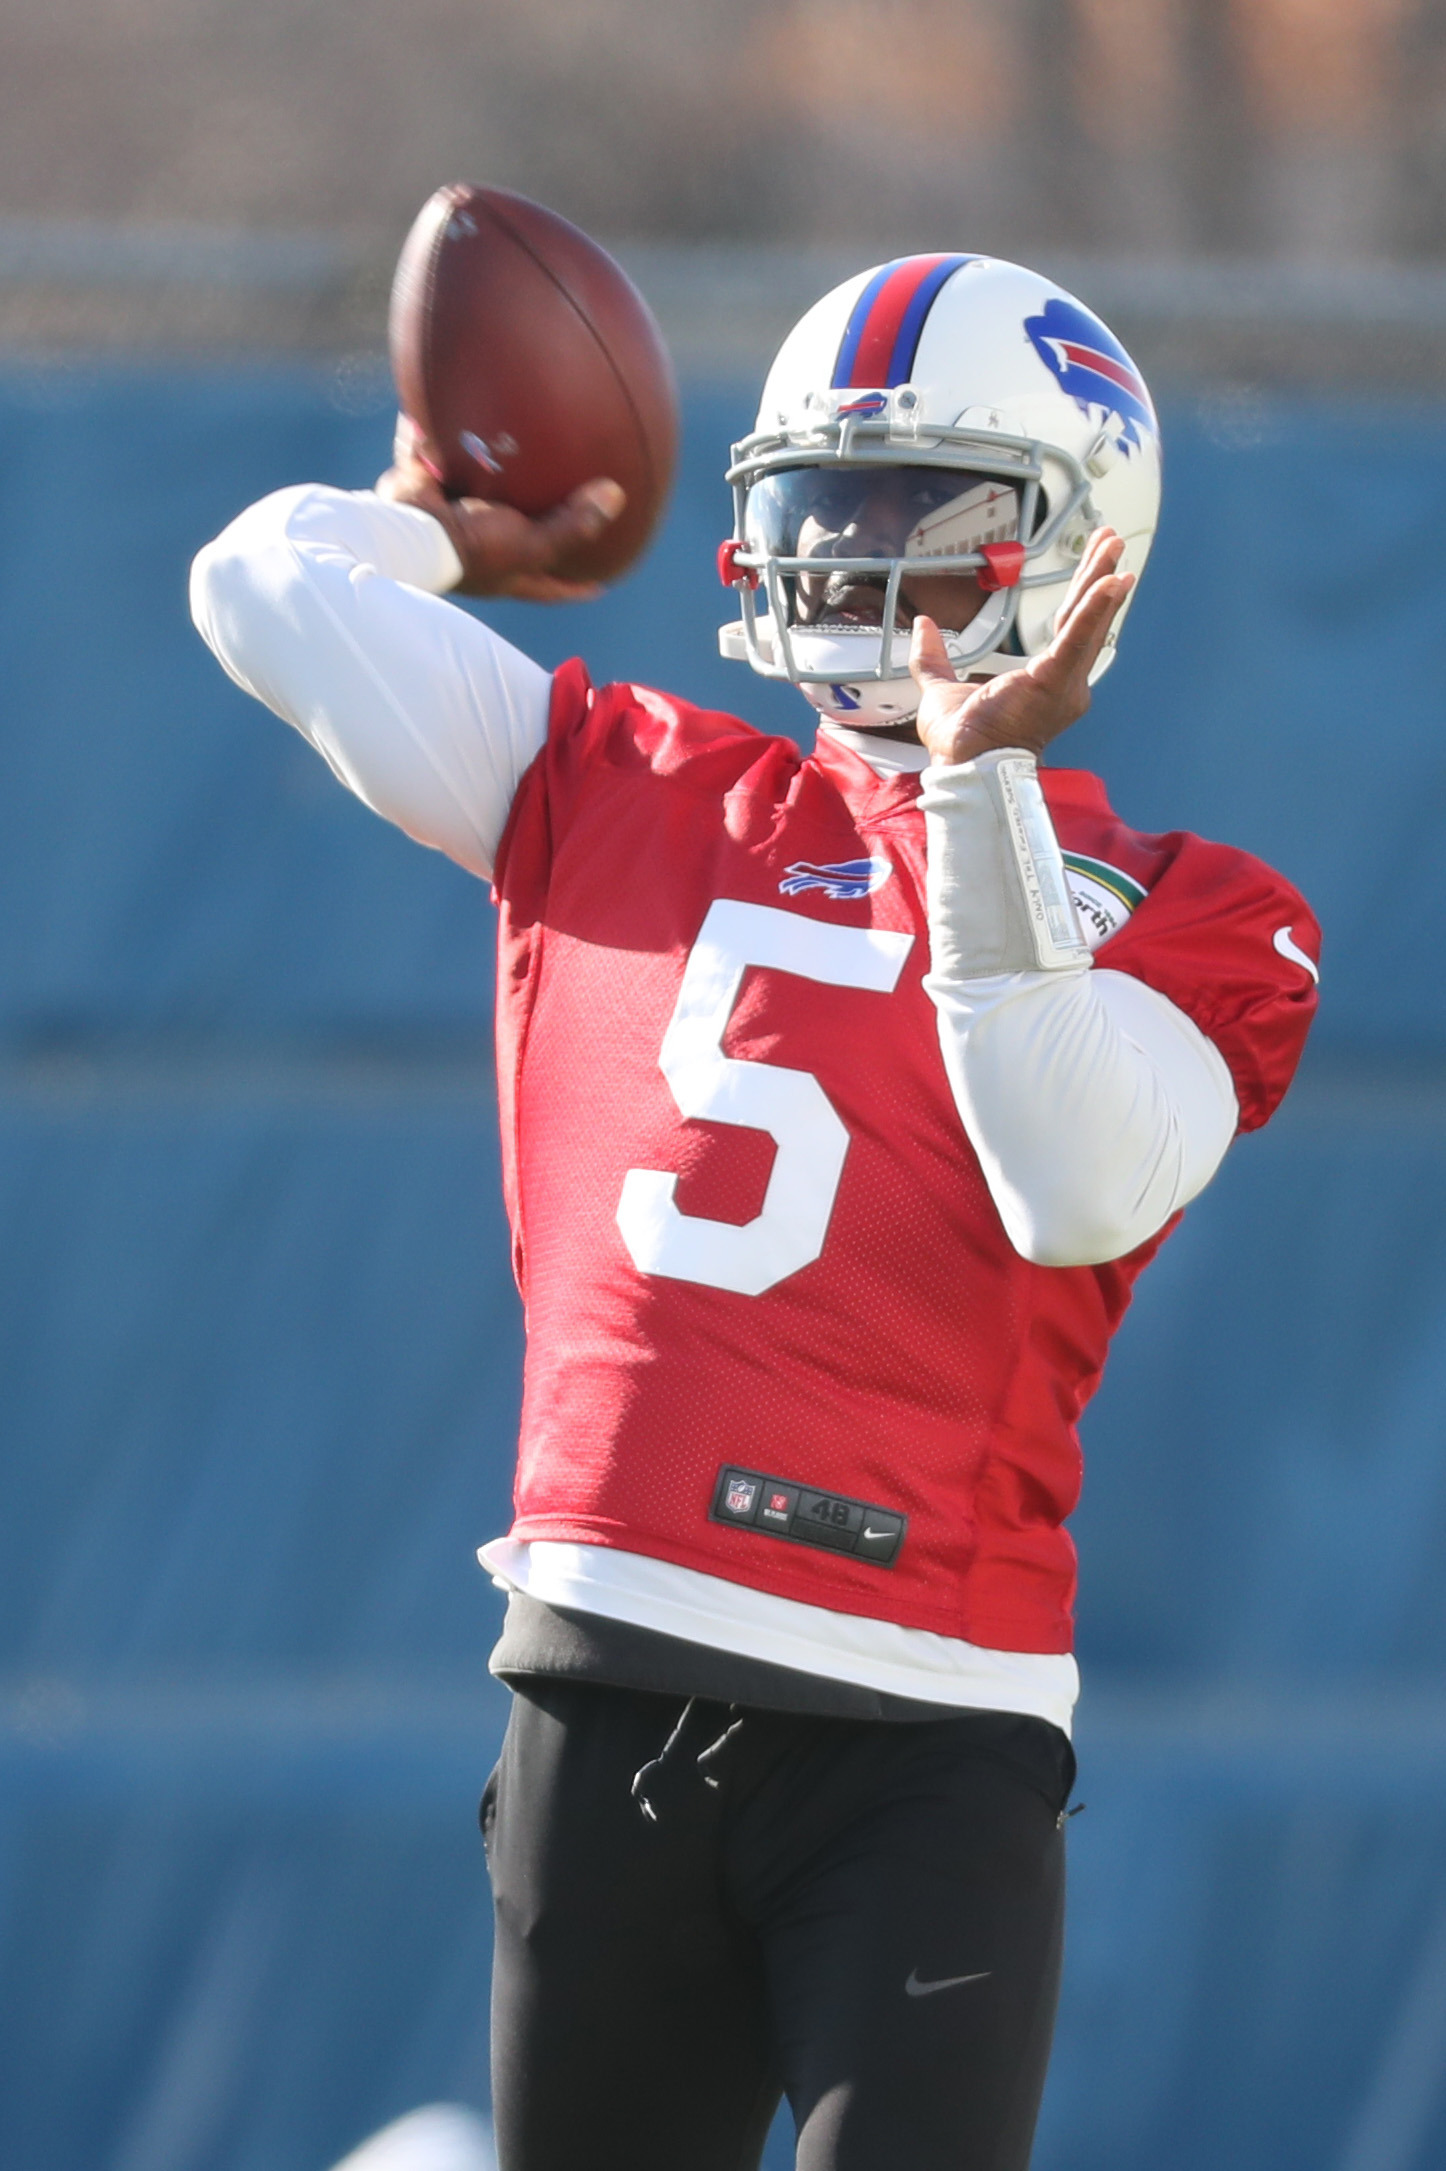 Buffalo Bills quarterback Tyrod Taylor (5) throws a pass during practice at ADPRO Sports Training Center in on Monday, Nov. 14, 2016.  (James P. McCoy/Buffalo News)